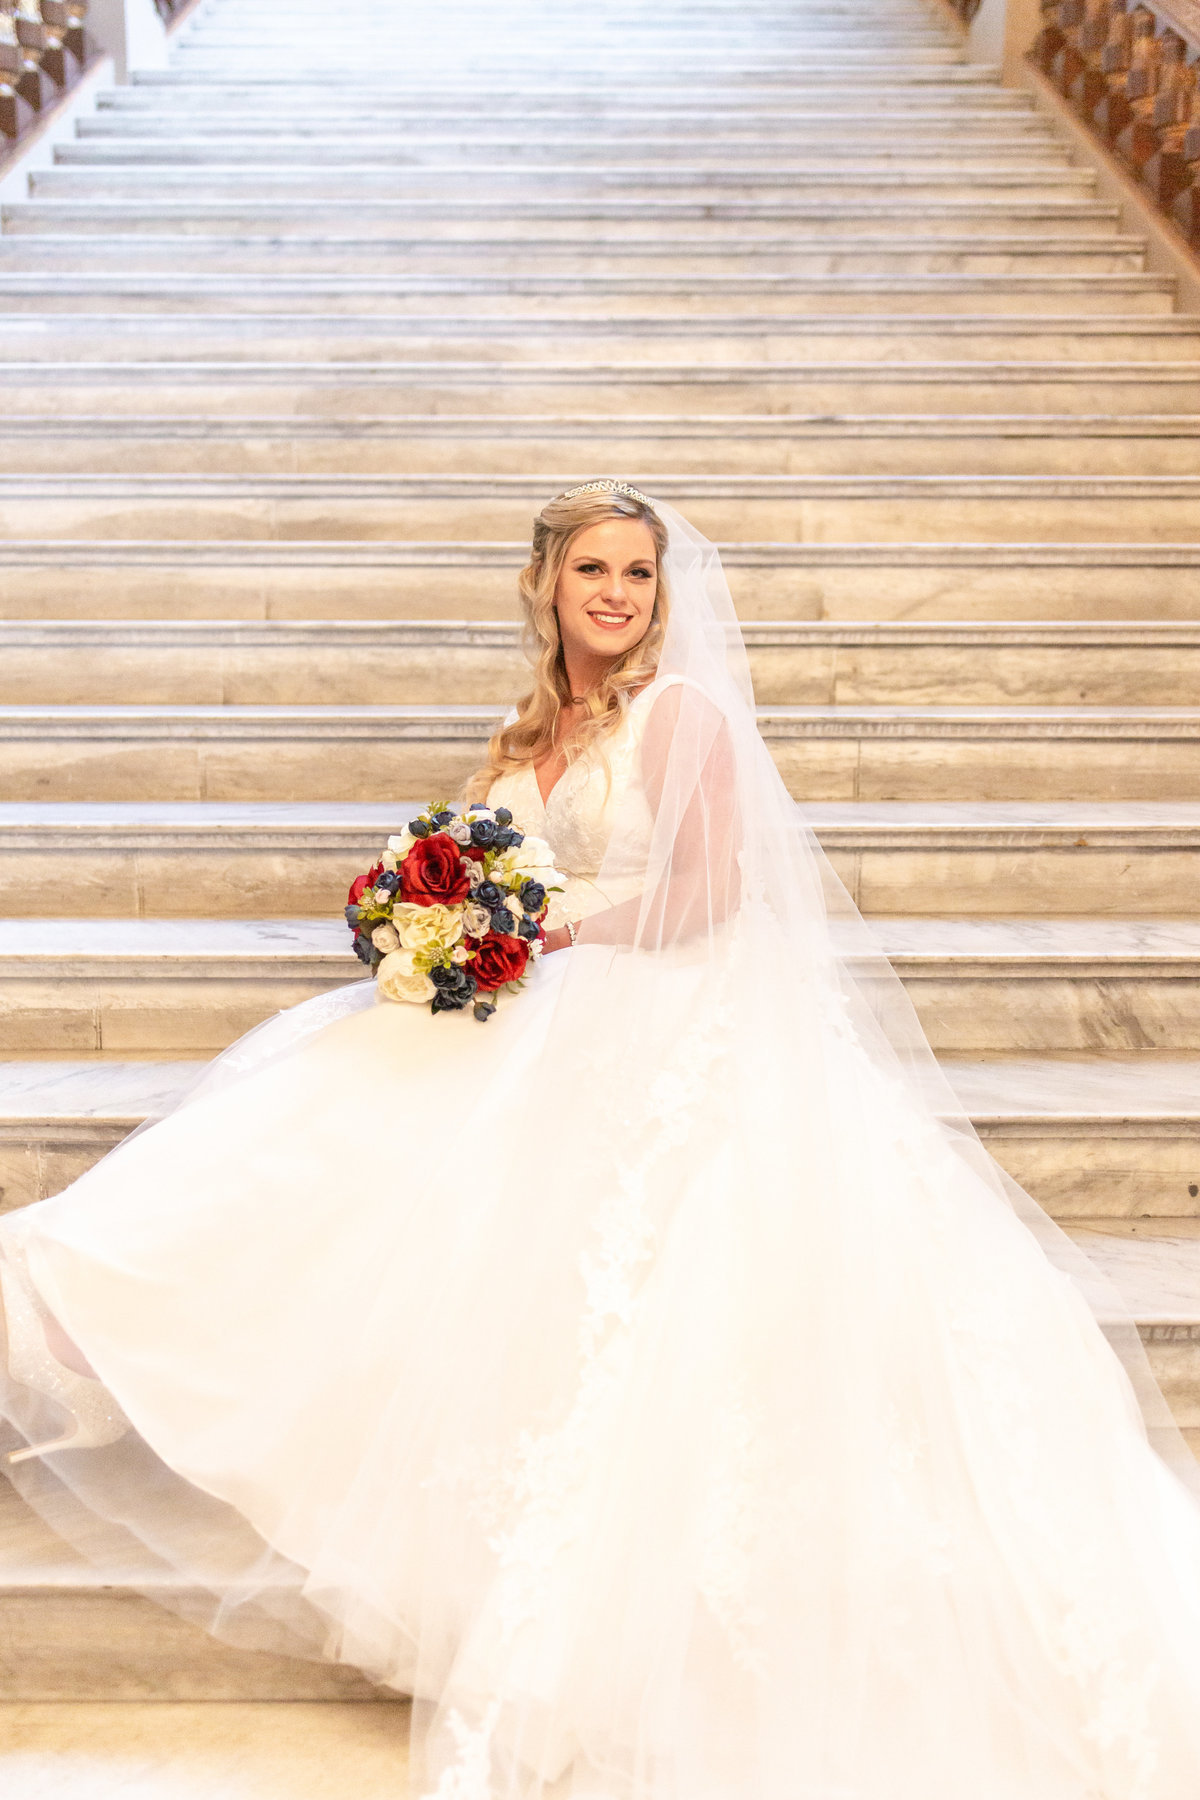 Ohio Wedding Photographer - Best 2019-258